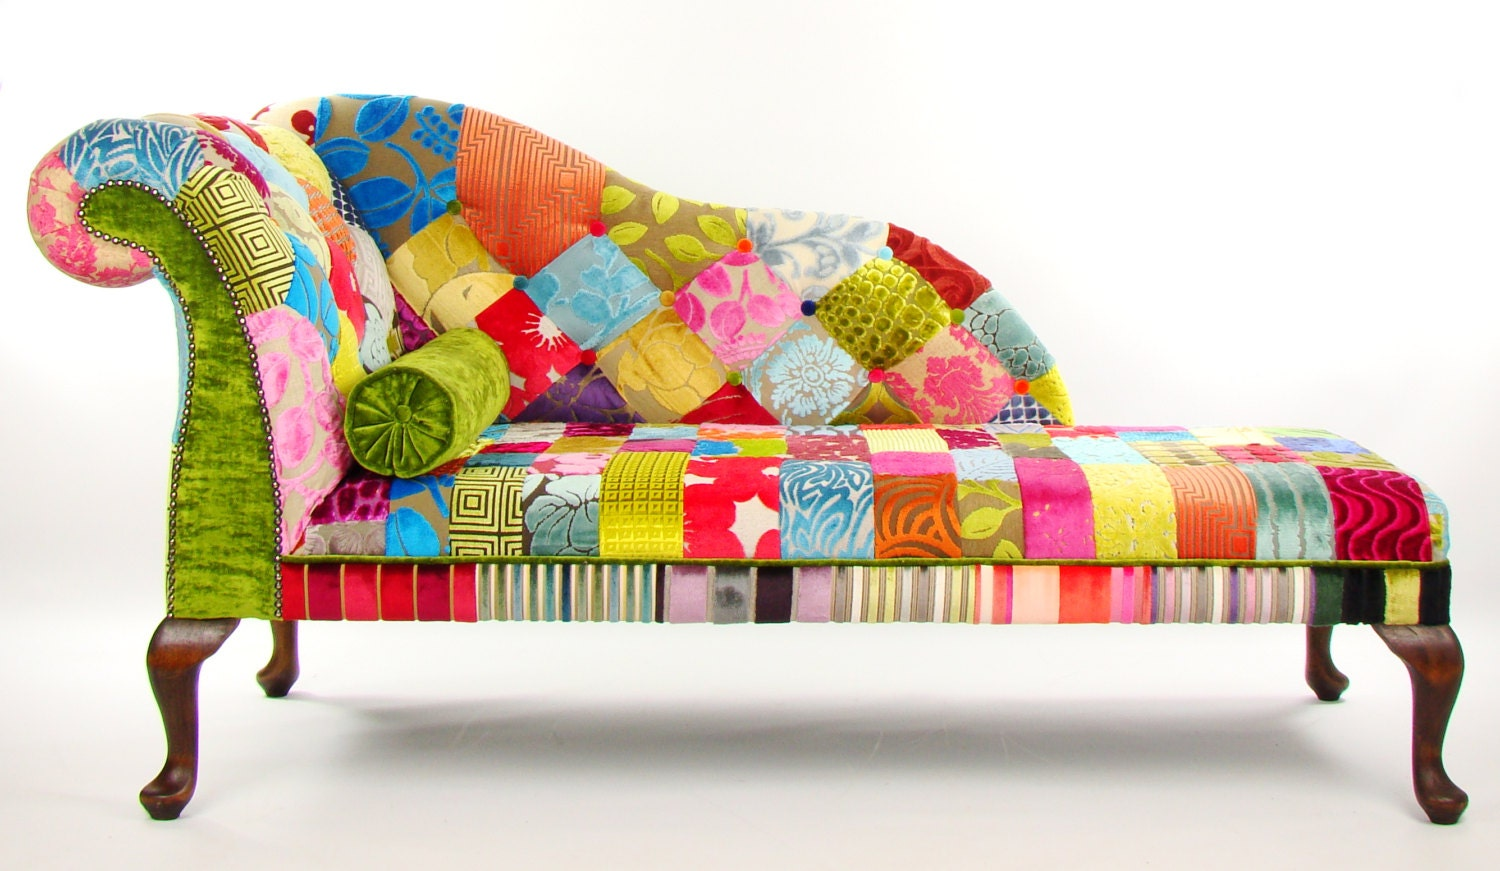 Bespoke patchwork lhf chaise longue designers guild fabric for Chaise longue designer